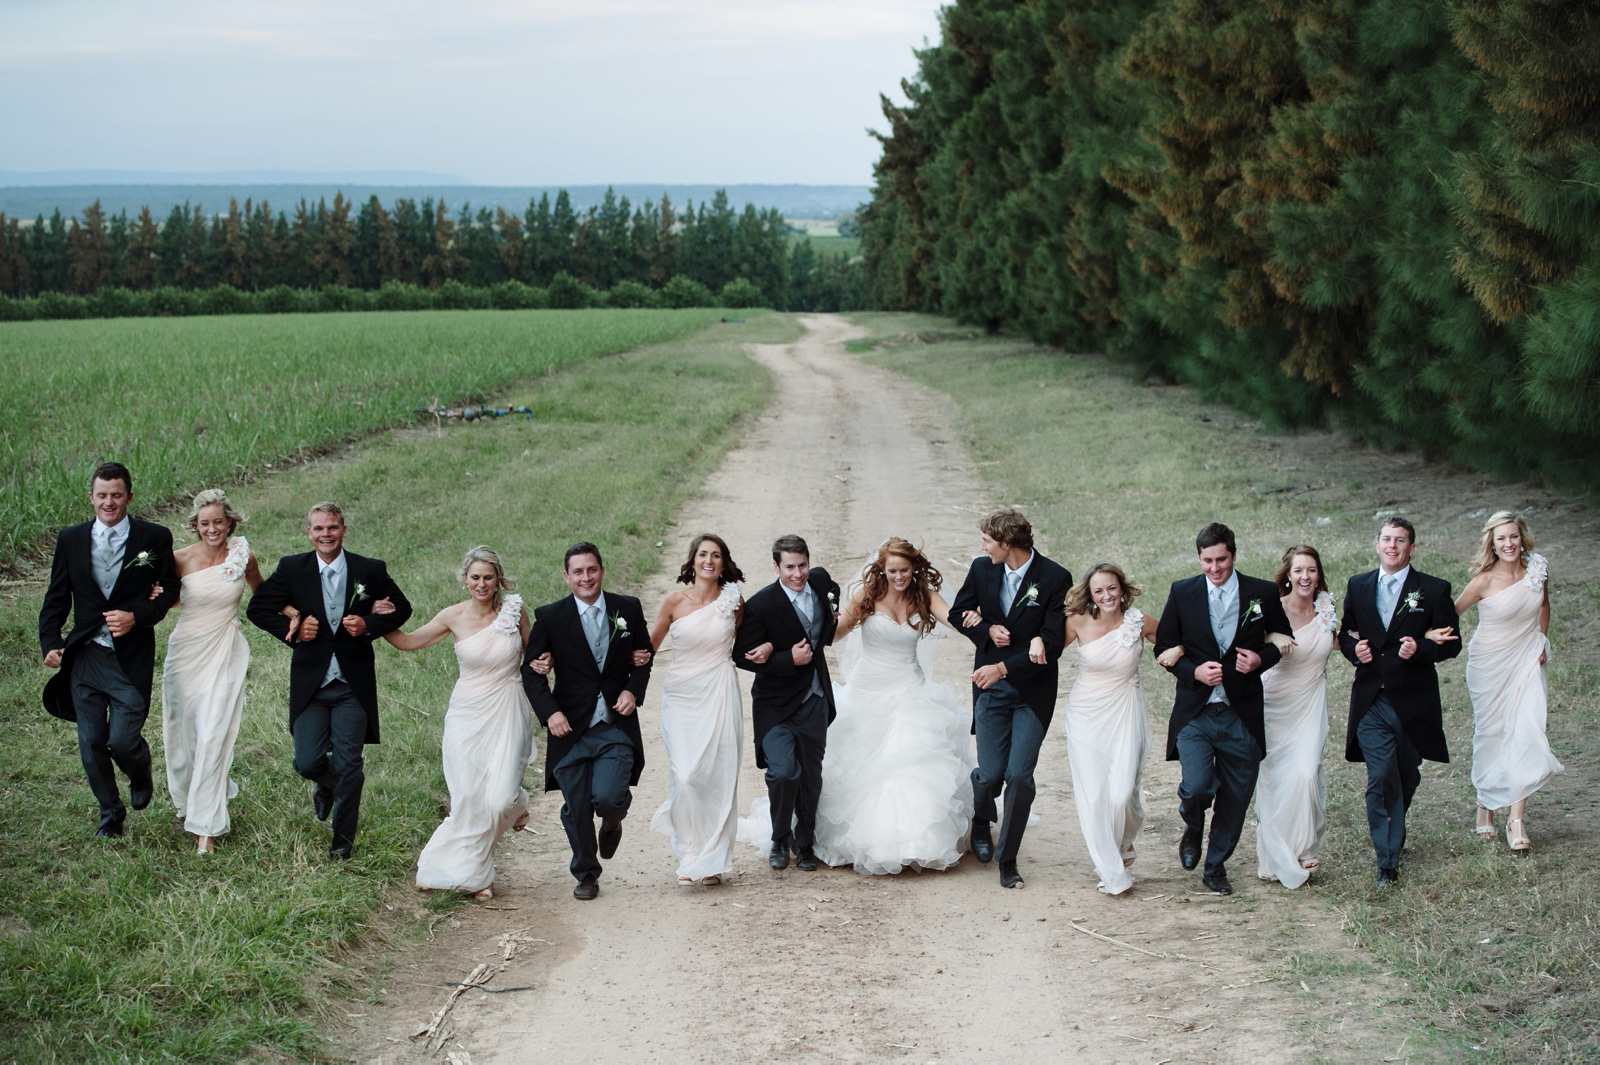 Bridal party running in field